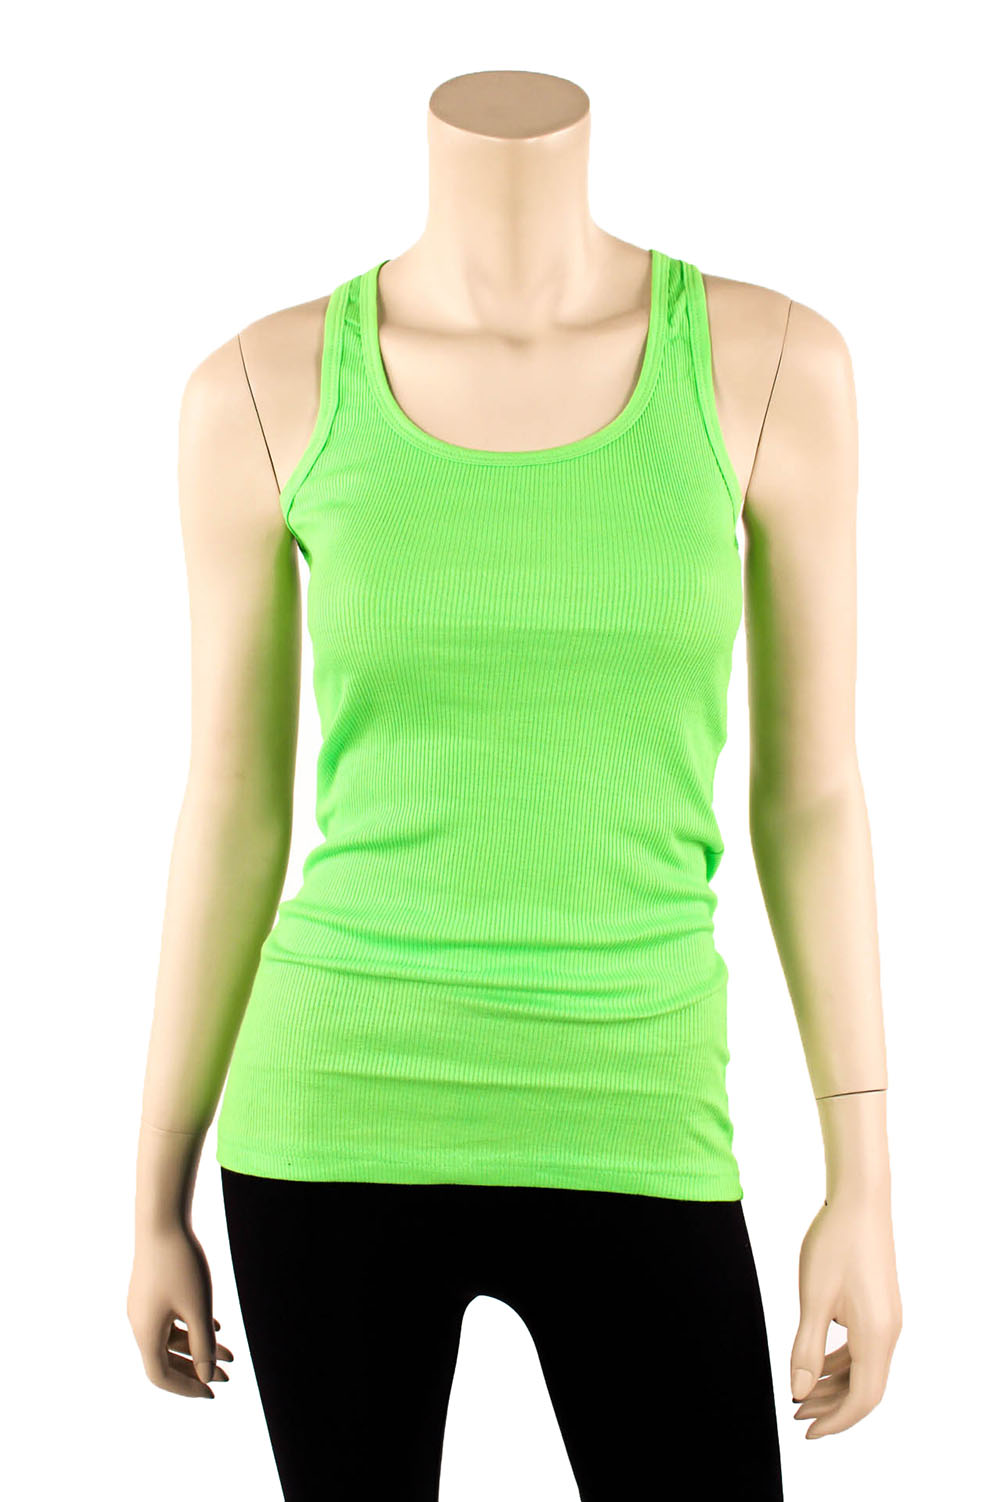 Womens-Tank-Top-100-Cotton-Heavy-Weight-Ribbed-A-Shirt-Basic-Workout-S-M-L-XL